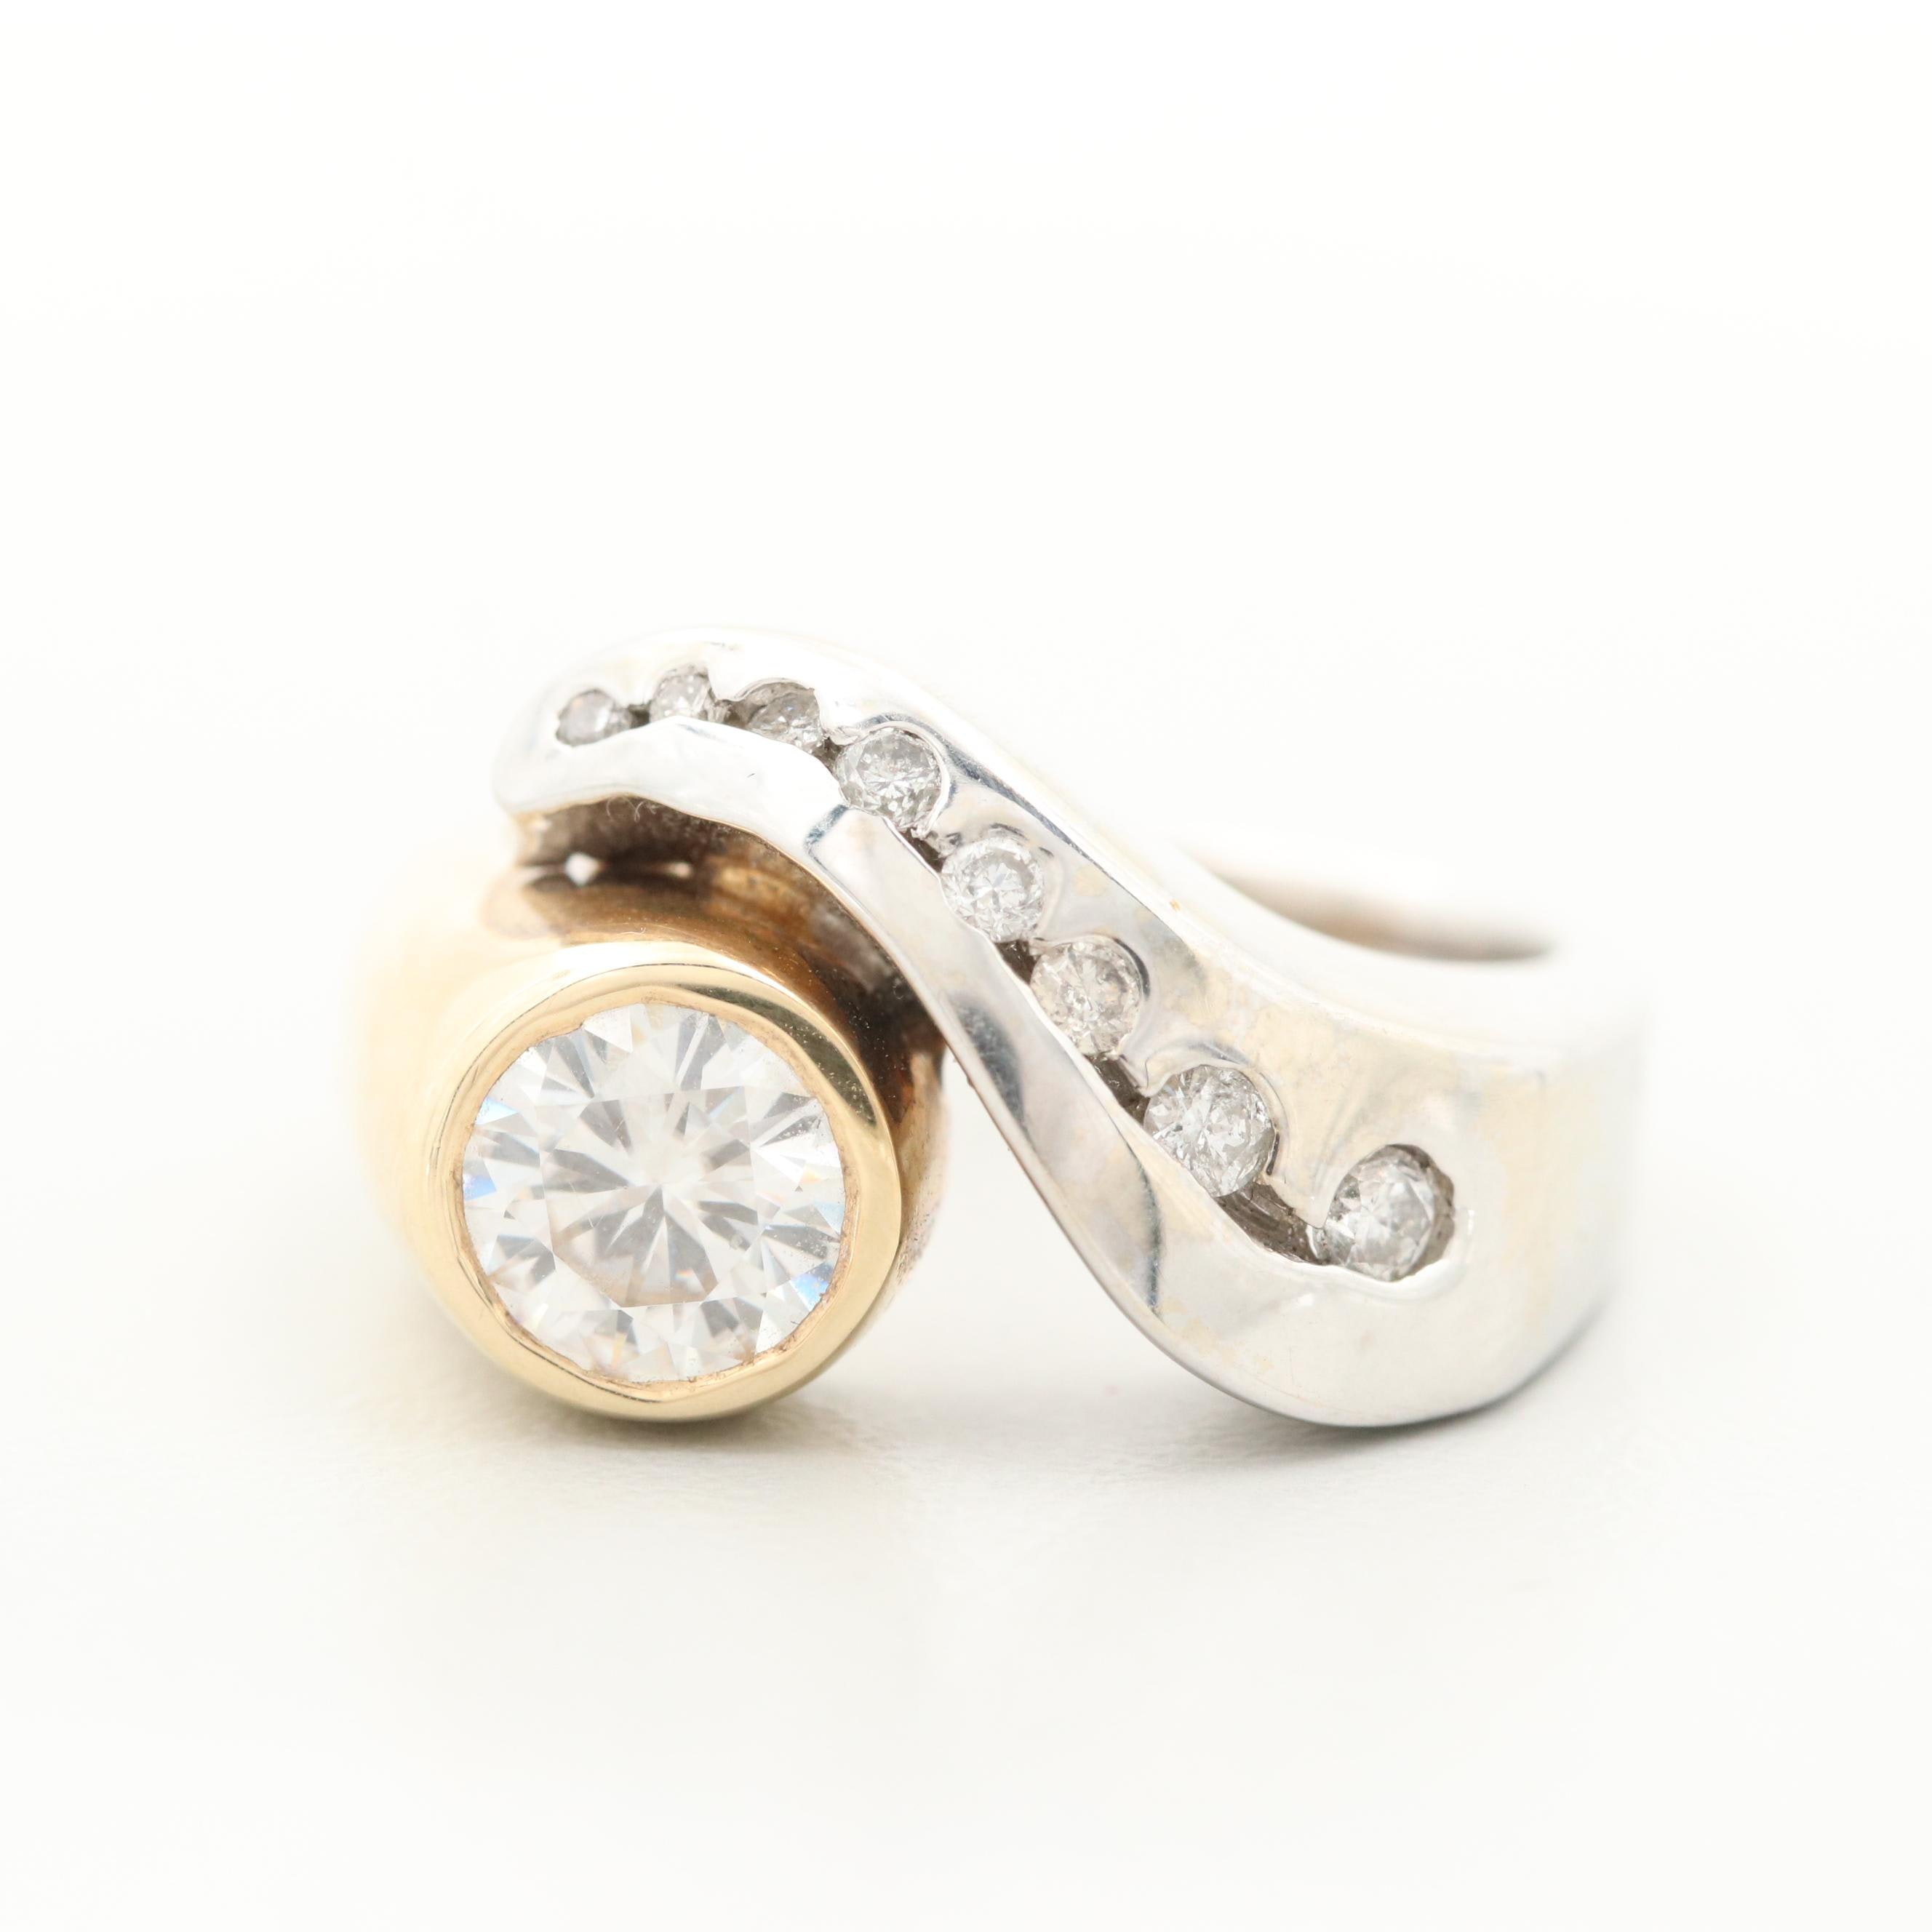 14K White and Yellow Gold Moissanite and Diamond Ring